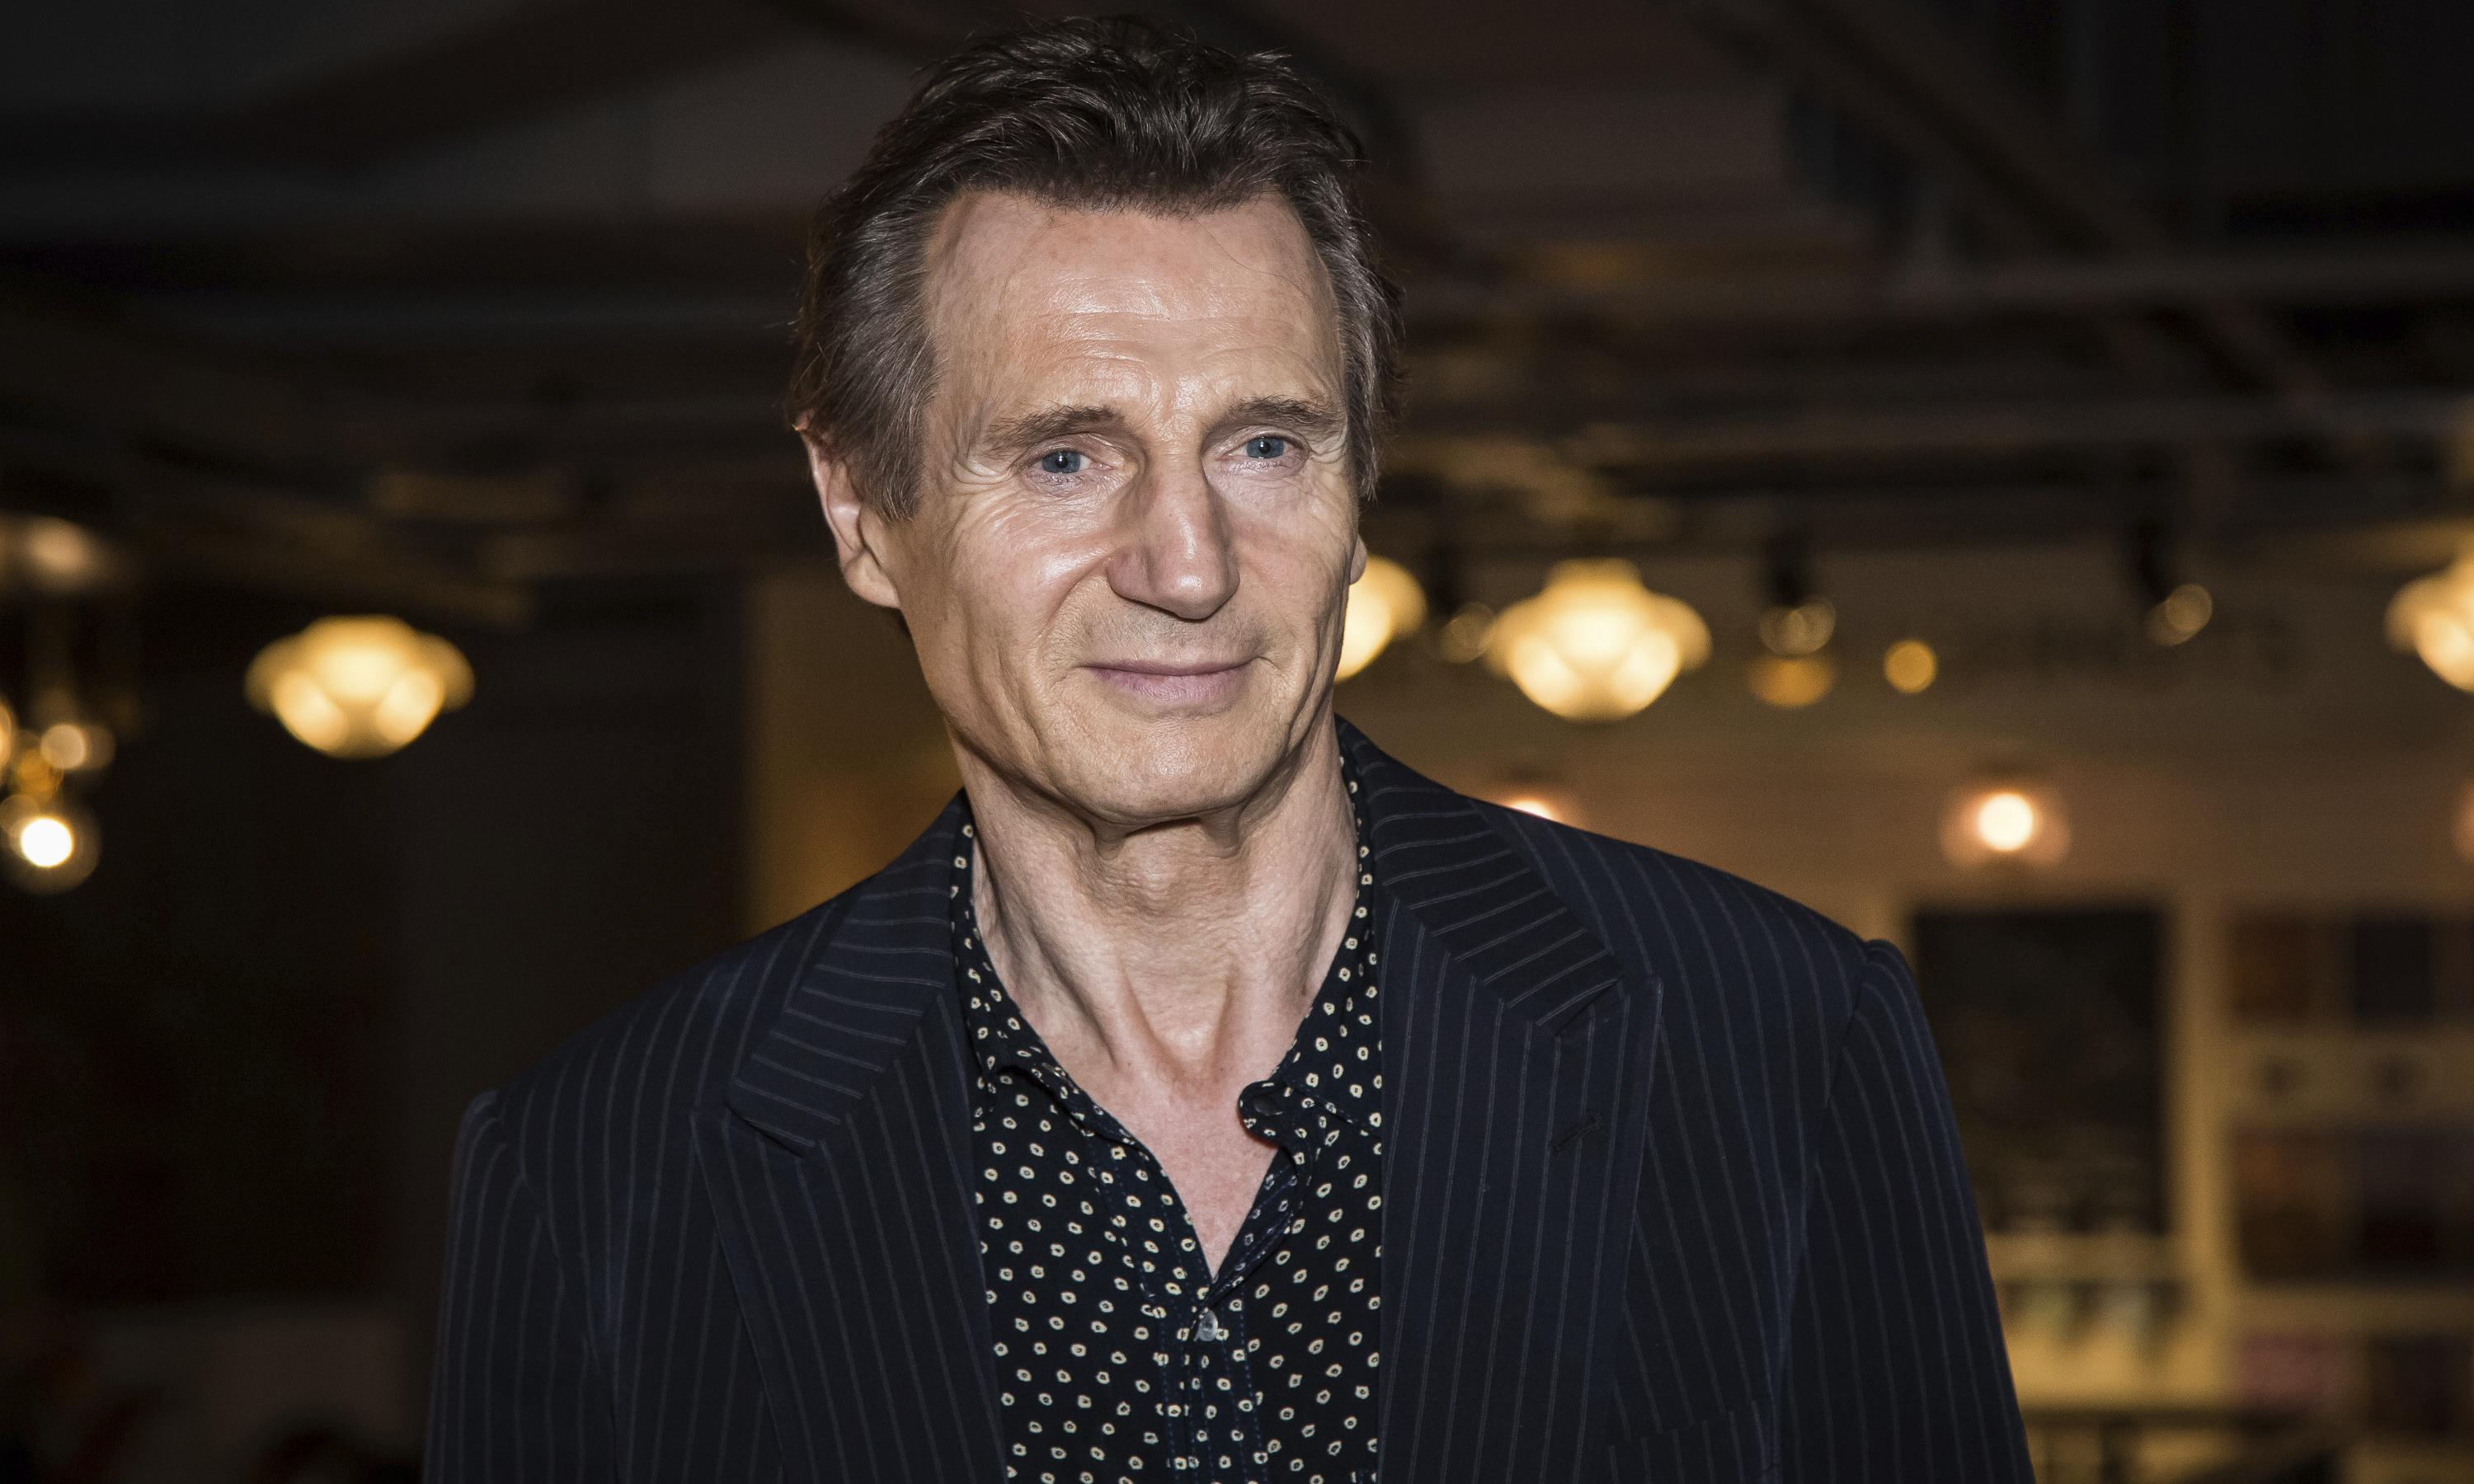 Liam Neeson 'profoundly apologises' over race attack remarks